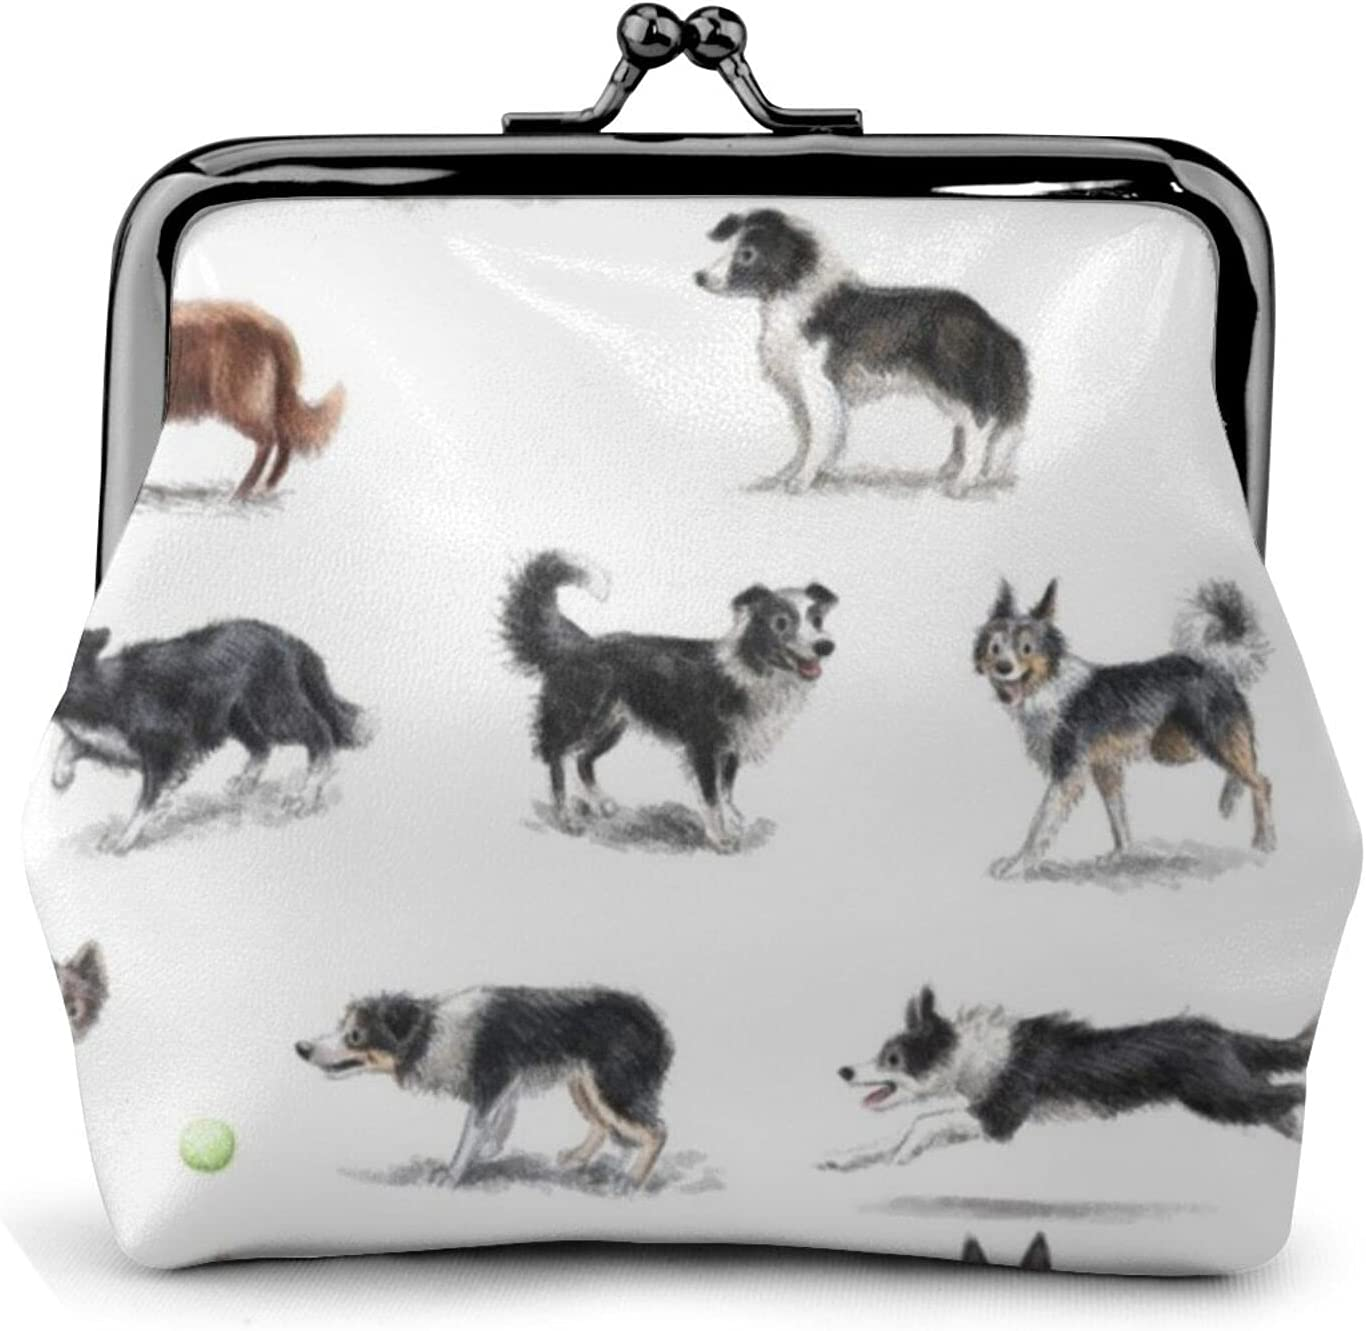 Border Collies V03 883 Women'S Wallet Buckle Coin Purses Pouch Kiss-lock Change Travel Makeup Wallets, Black, One Size